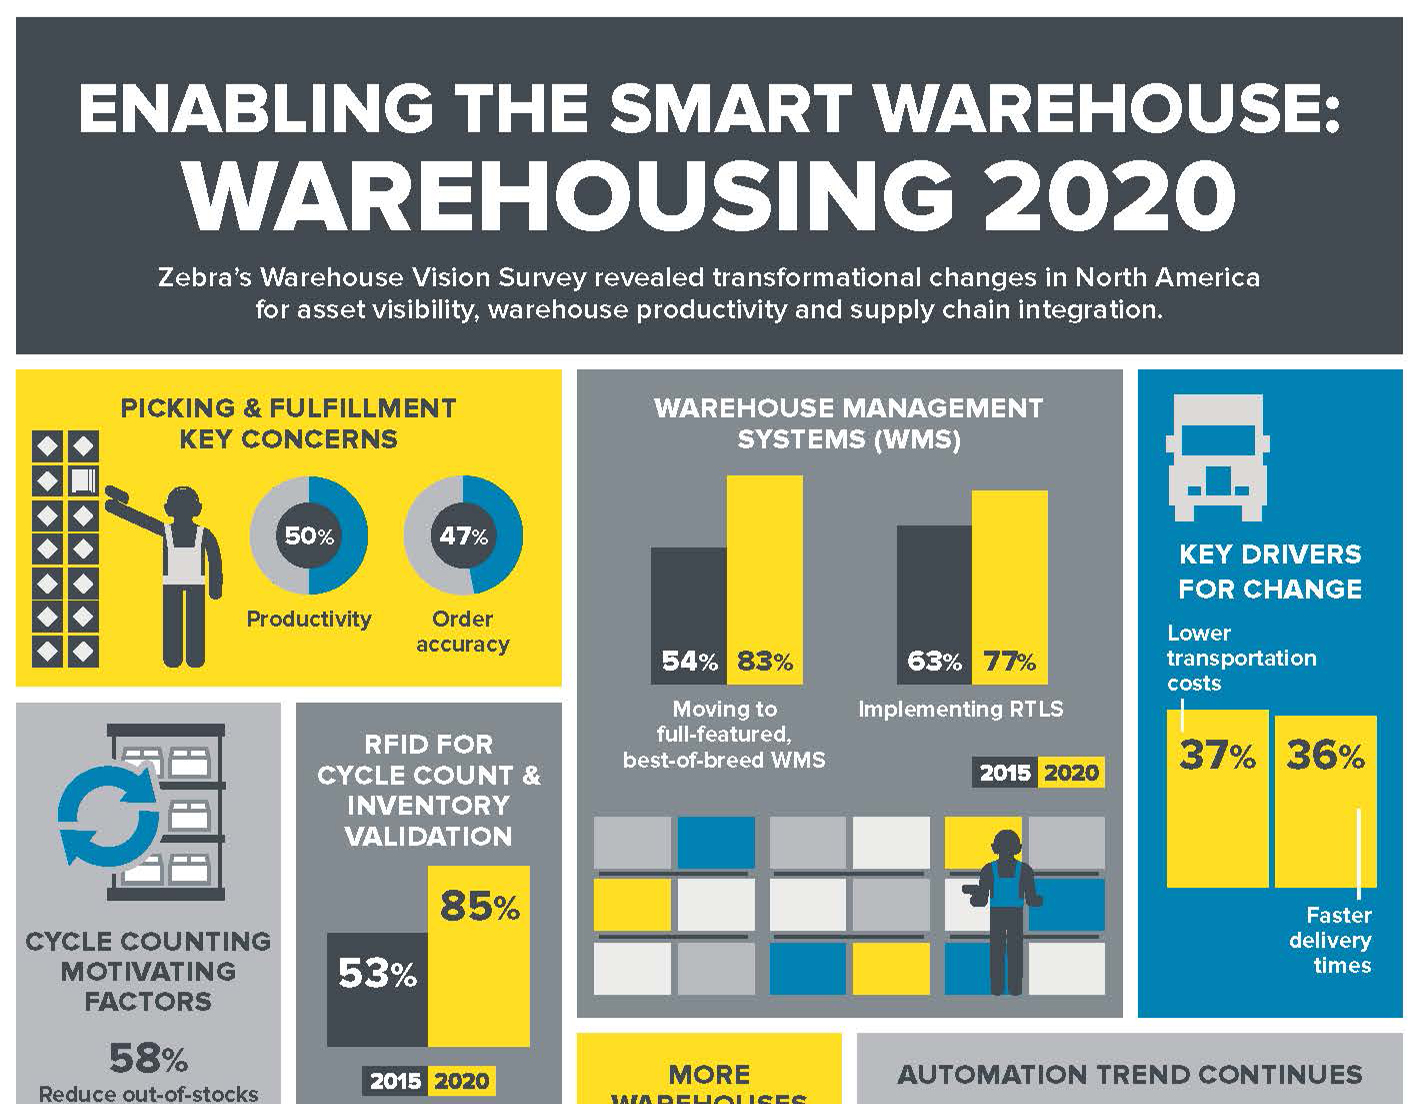 Enabling the Smart Warehouse